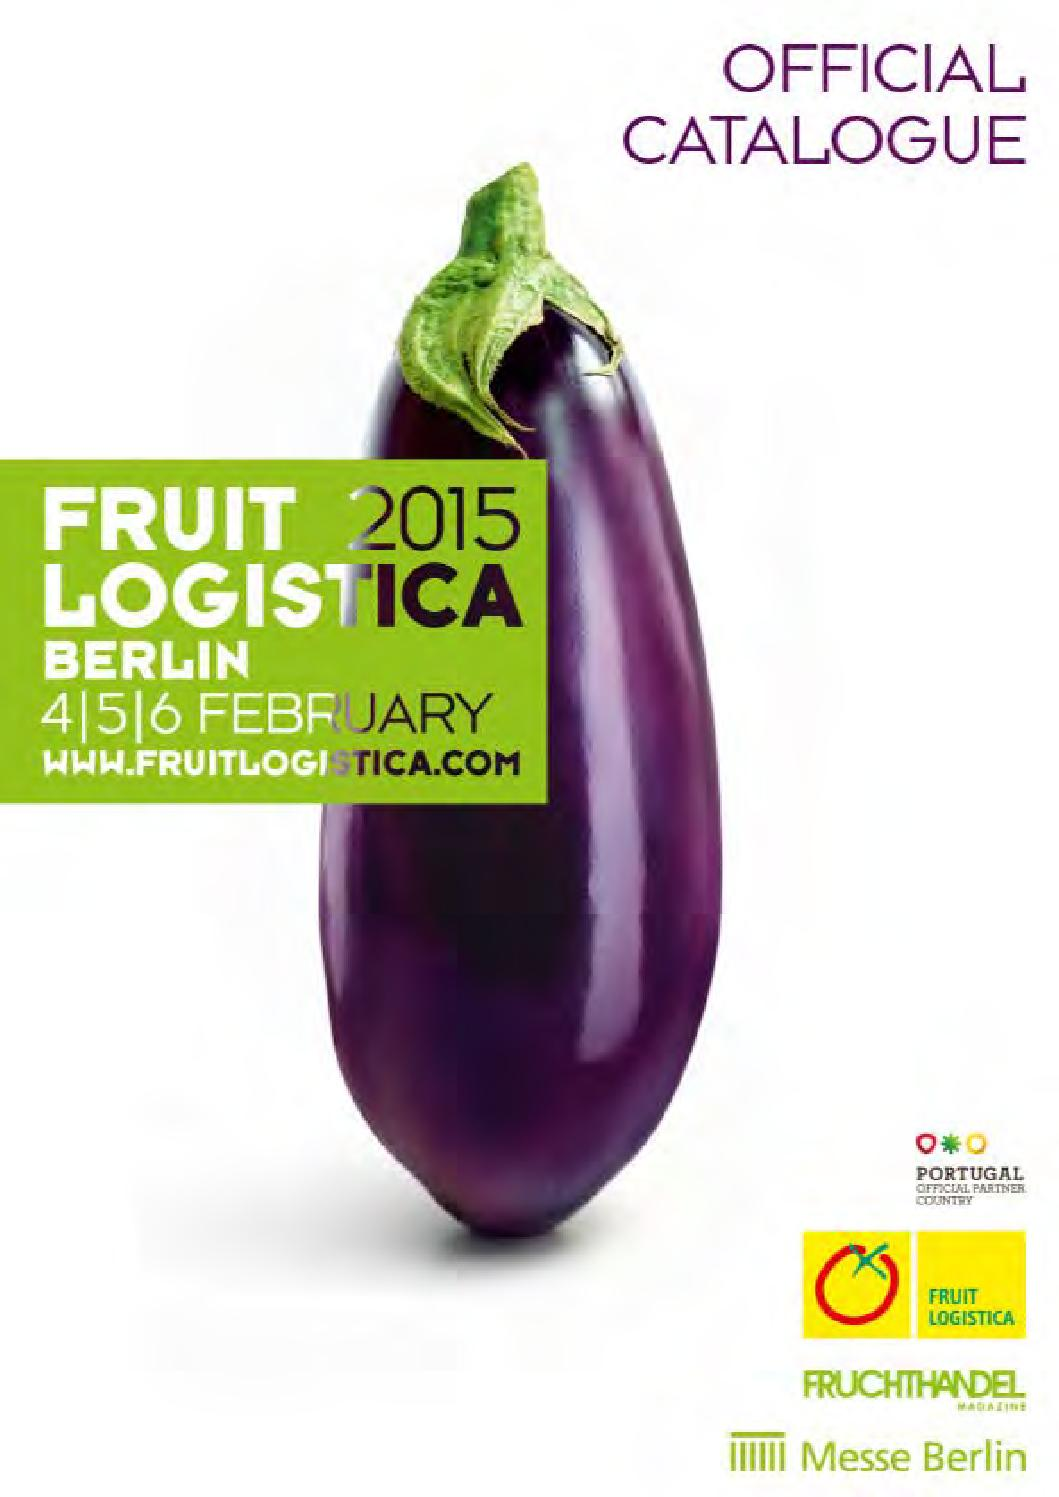 Cash Pool Geldautomaten Kiel Fruit Logistica Official Catalogue 2015 By Fruchthandel Magazin